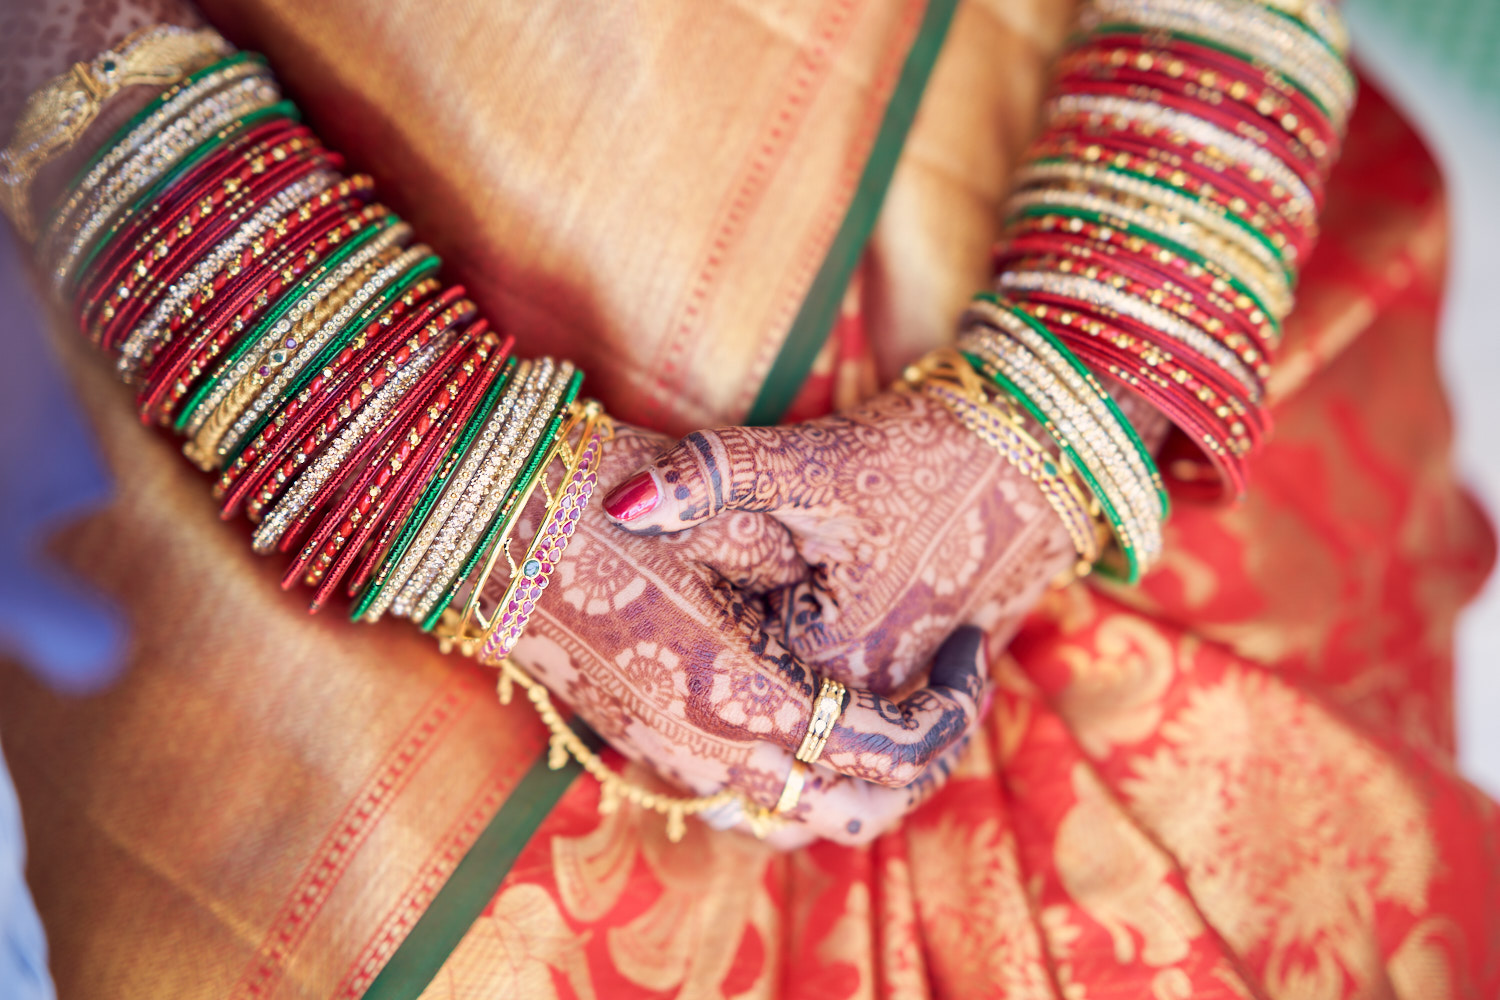 south-indian-wedding-ceremony-photography-by-afewgoodclicks-net-in-saratoga 38.jpg